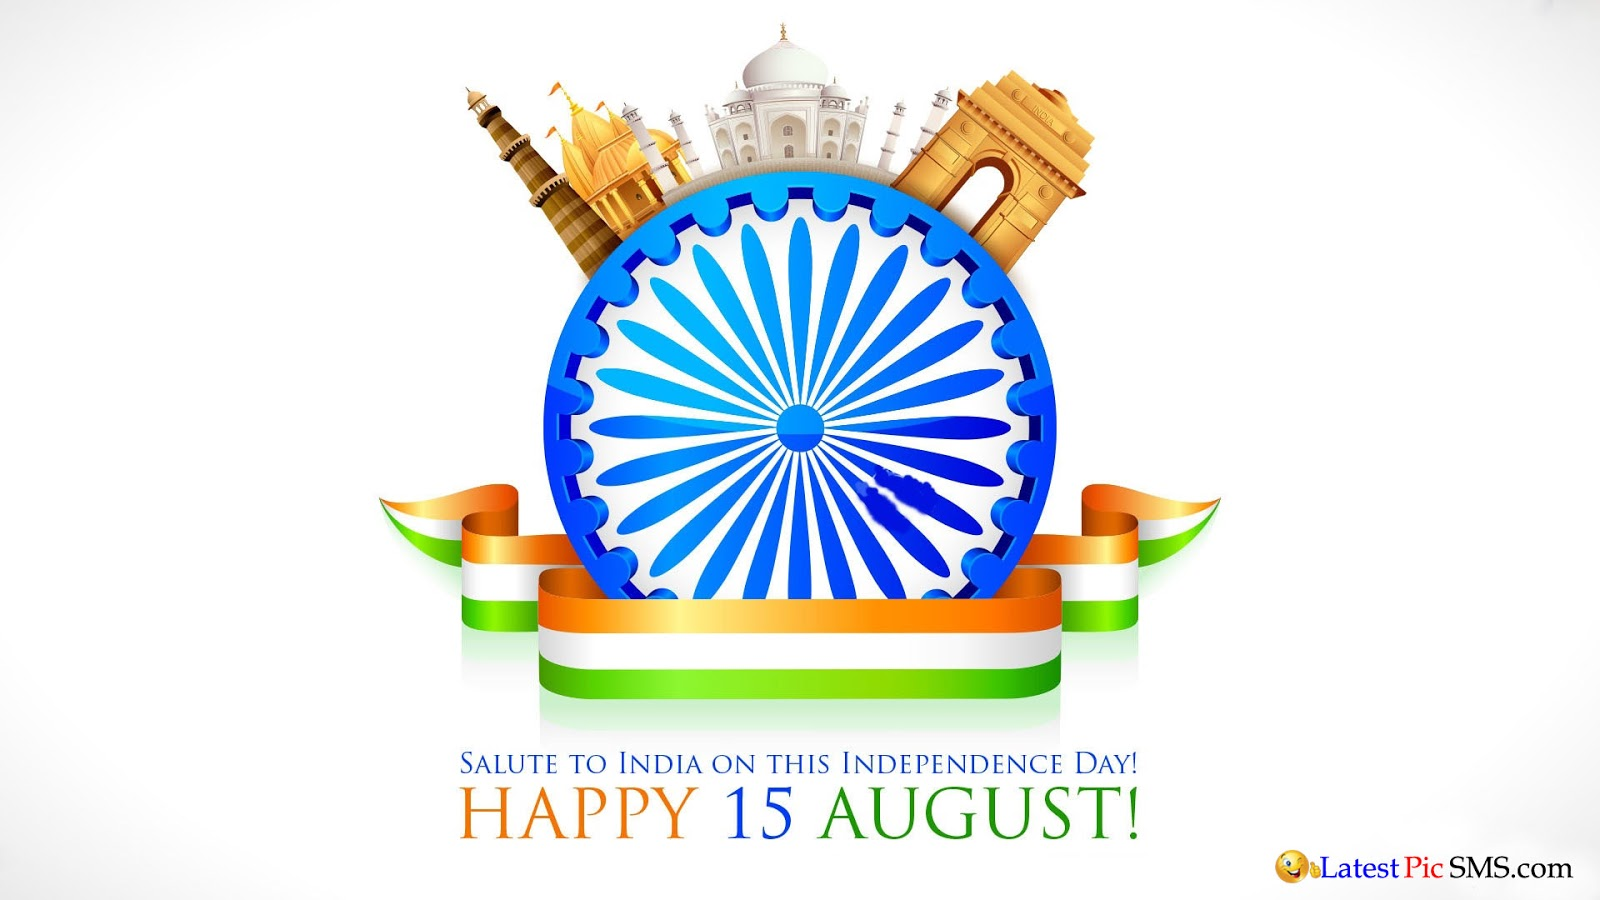 Salute to India On this Independence Day Pictures